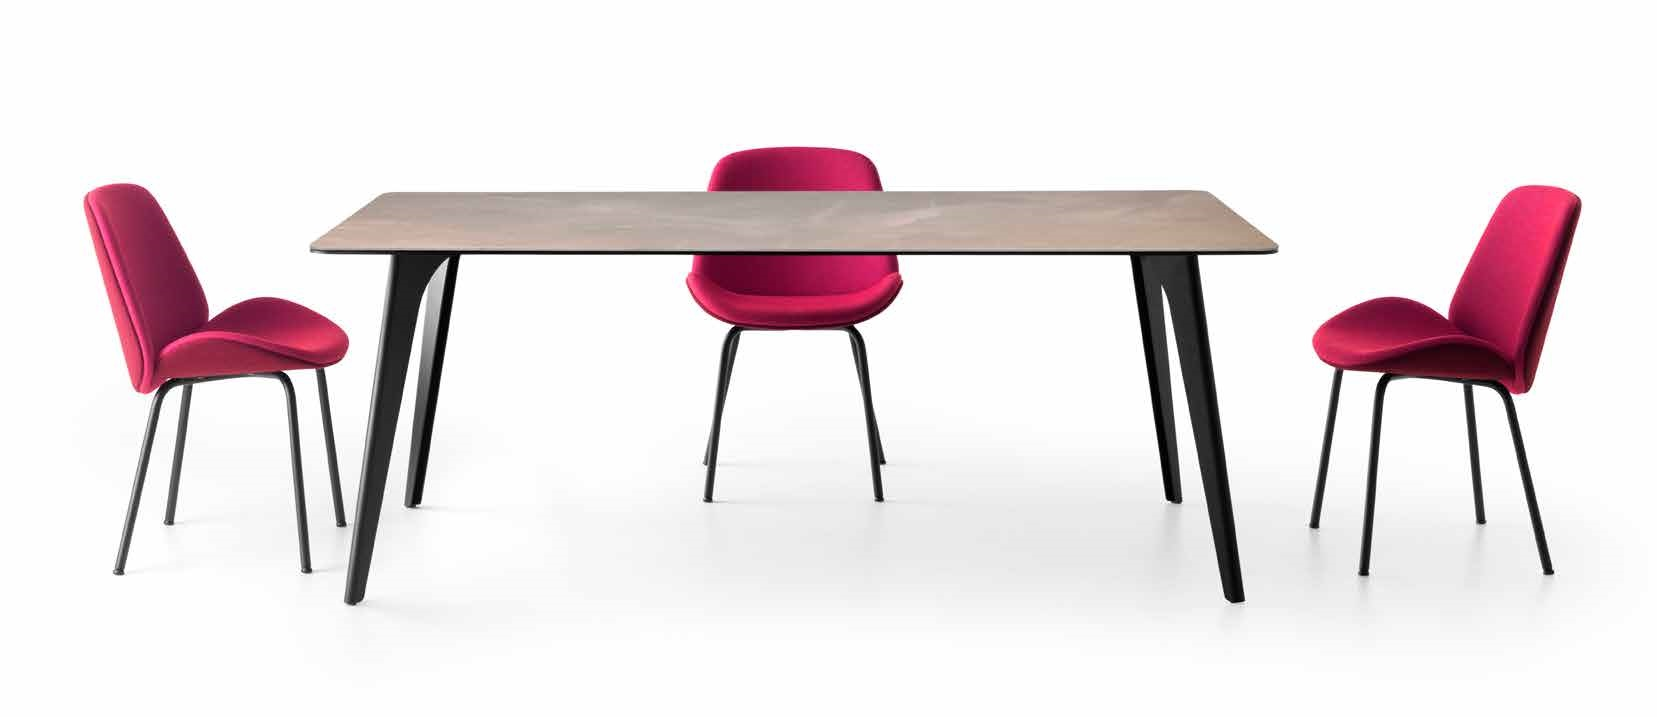 LX643 table